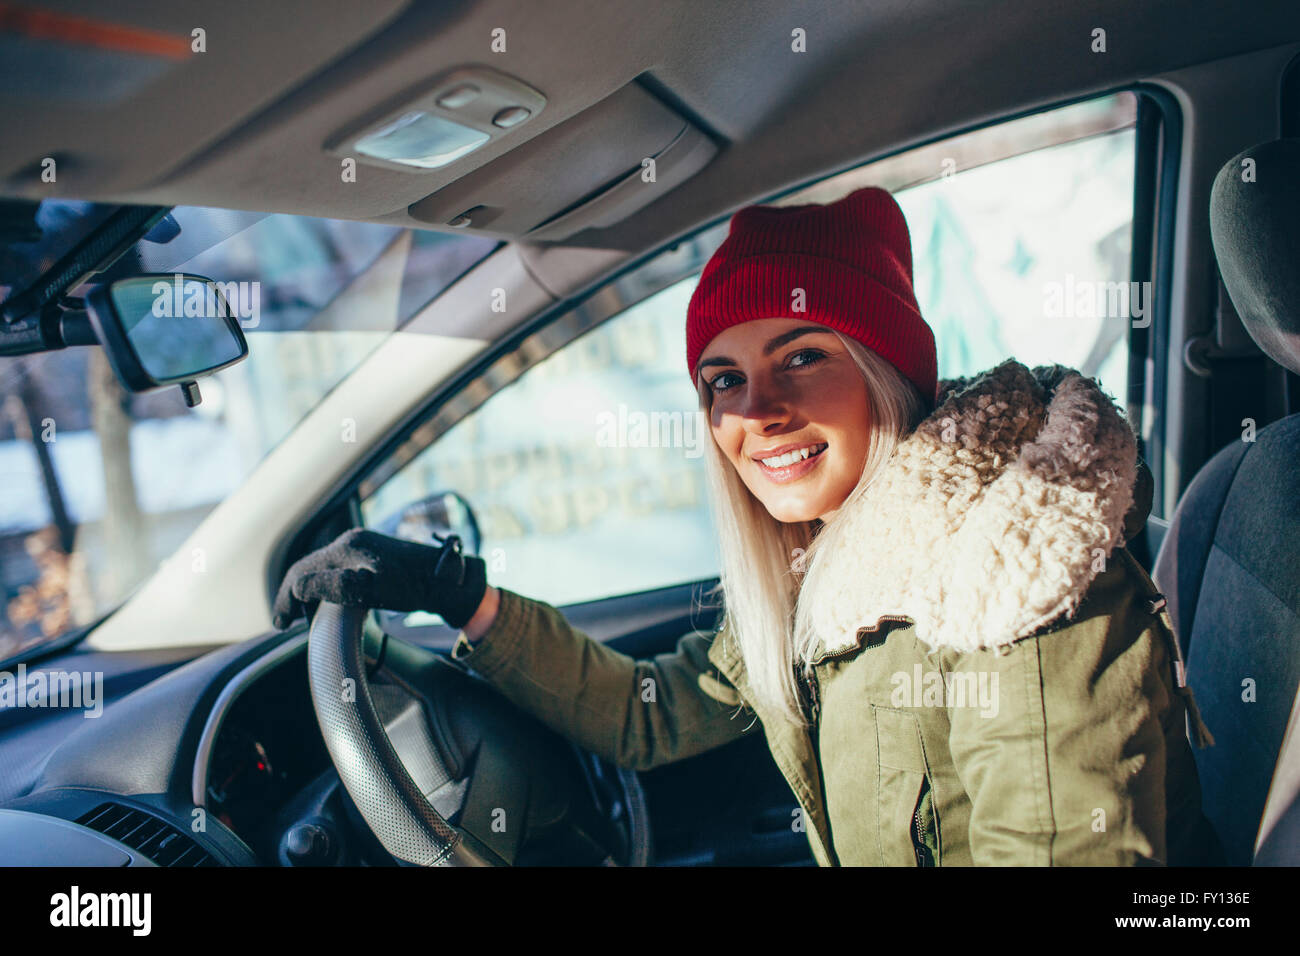 Portrait of happy woman in warm clothing driving car - Stock Image